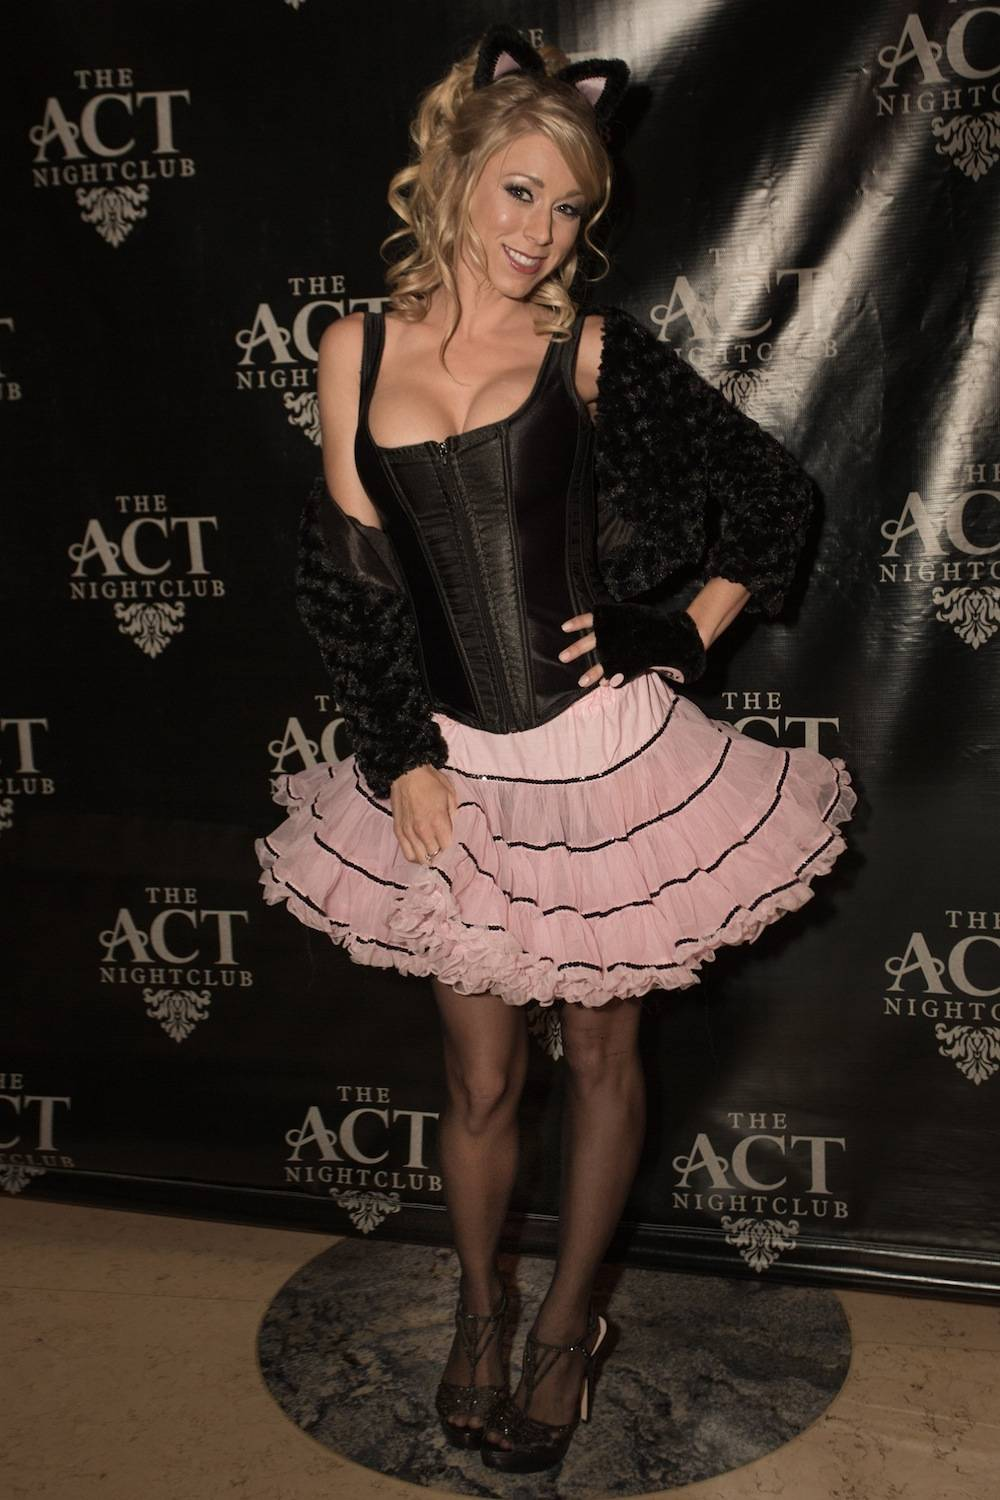 Katie Morgan at The ACT Nightclub